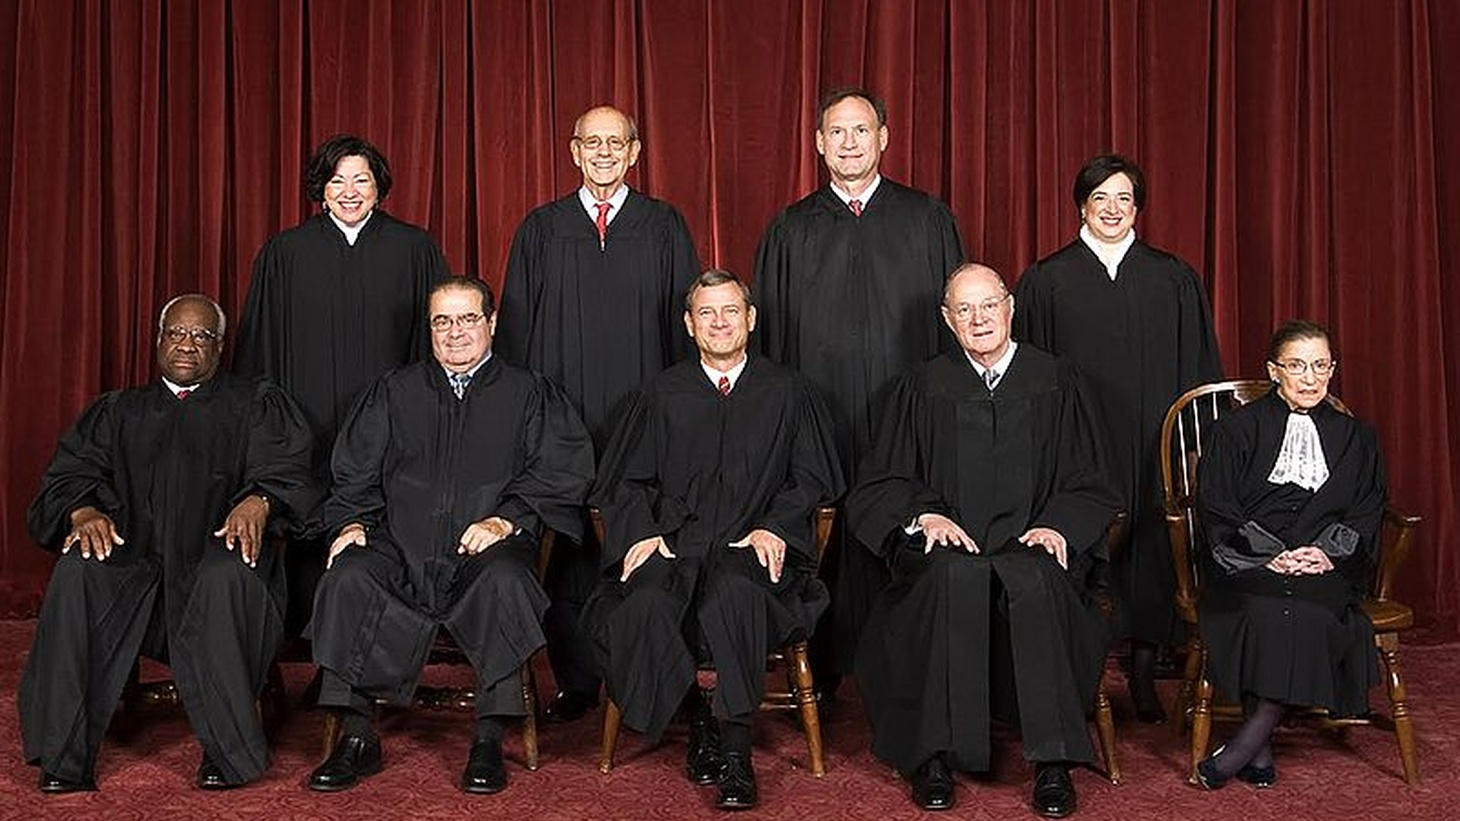 The U.S. Supreme Court in 2010. Top row (left to right): Sonia Sotomayor, Stephen G. Breyer, Samuel A. Alito, and Elena Kagan. Bottom row (left to right): Clarence Thomas, Antonin Scalia, John G. Roberts, Anthony Kennedy, and Ruth Bader Ginsburg.